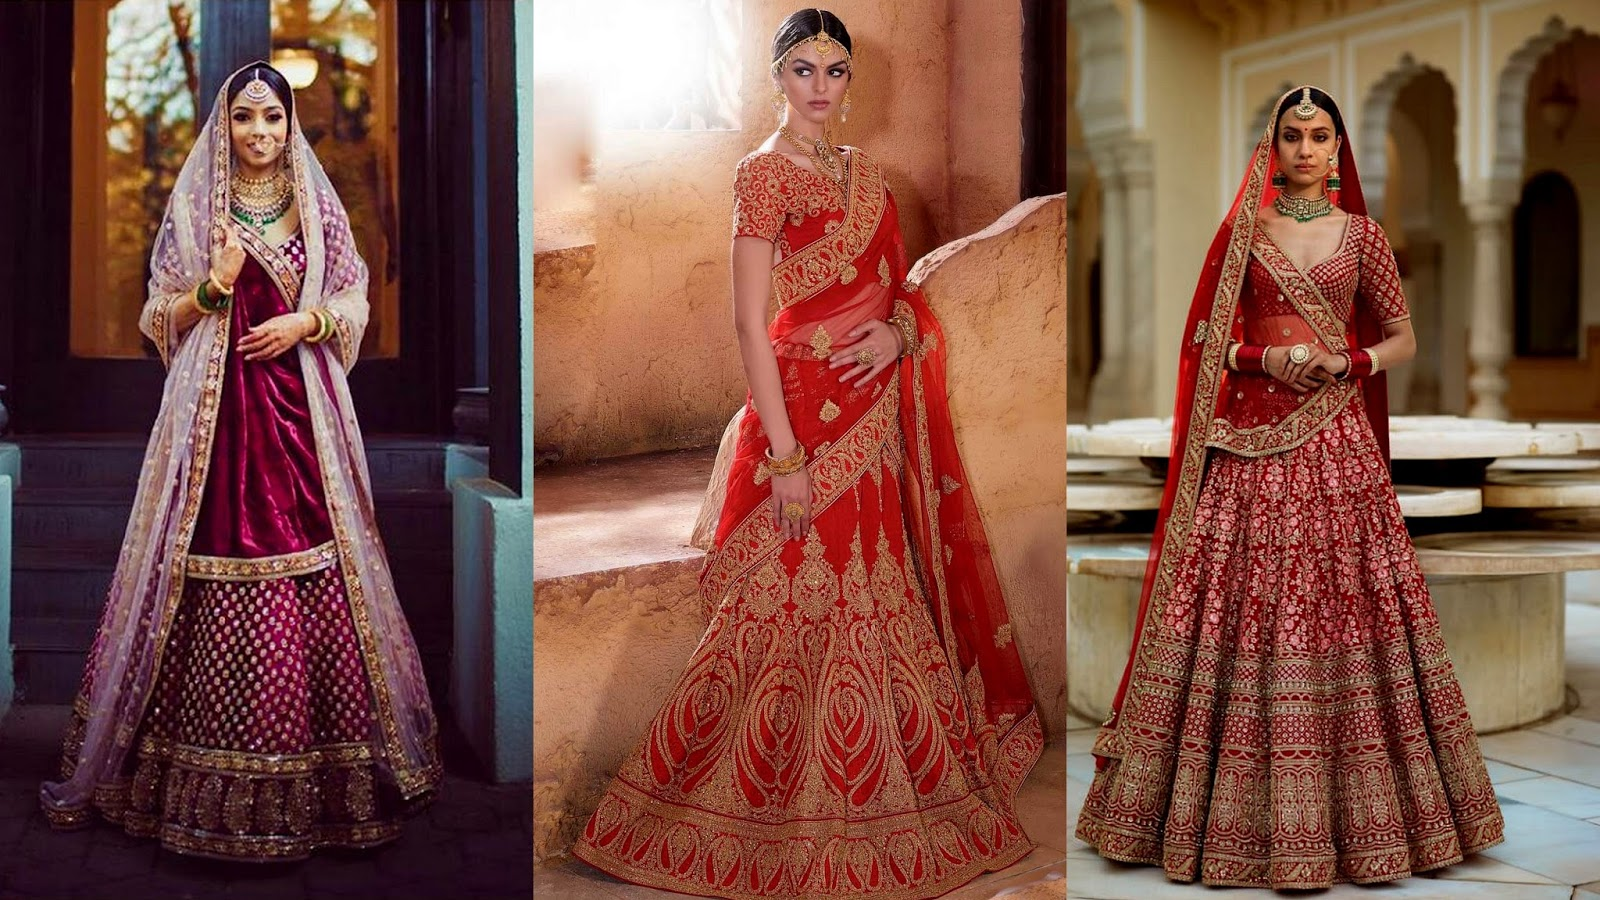 Bride,Indian tradition,LEHENGA,Bridal lehenga,golden lehenga,bridal jewellery,designer lehenga,blue lehenga,pink lehenga,double duppatta,off the beat lehenga,orange lehenga,summer bride,winter bride ,peach top,fitted jeans,pastel colours,classy and simple outfits,designer lehenga,local shop lehenga,sabyasachi lehenga,designer lehenga,manish malhotra lehenga